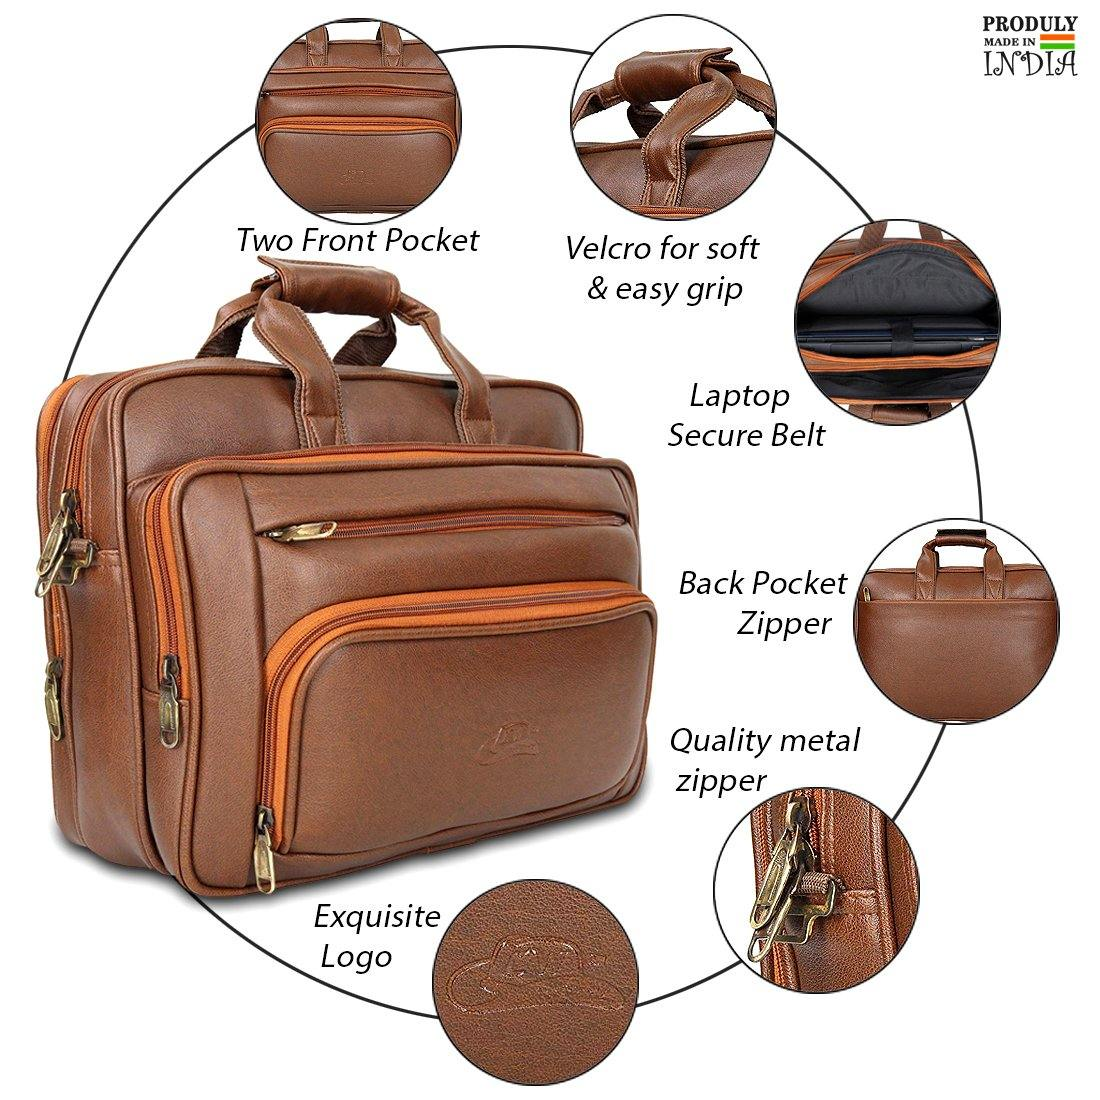 Leather World Expandable PU Leather Laptop/Office Bag